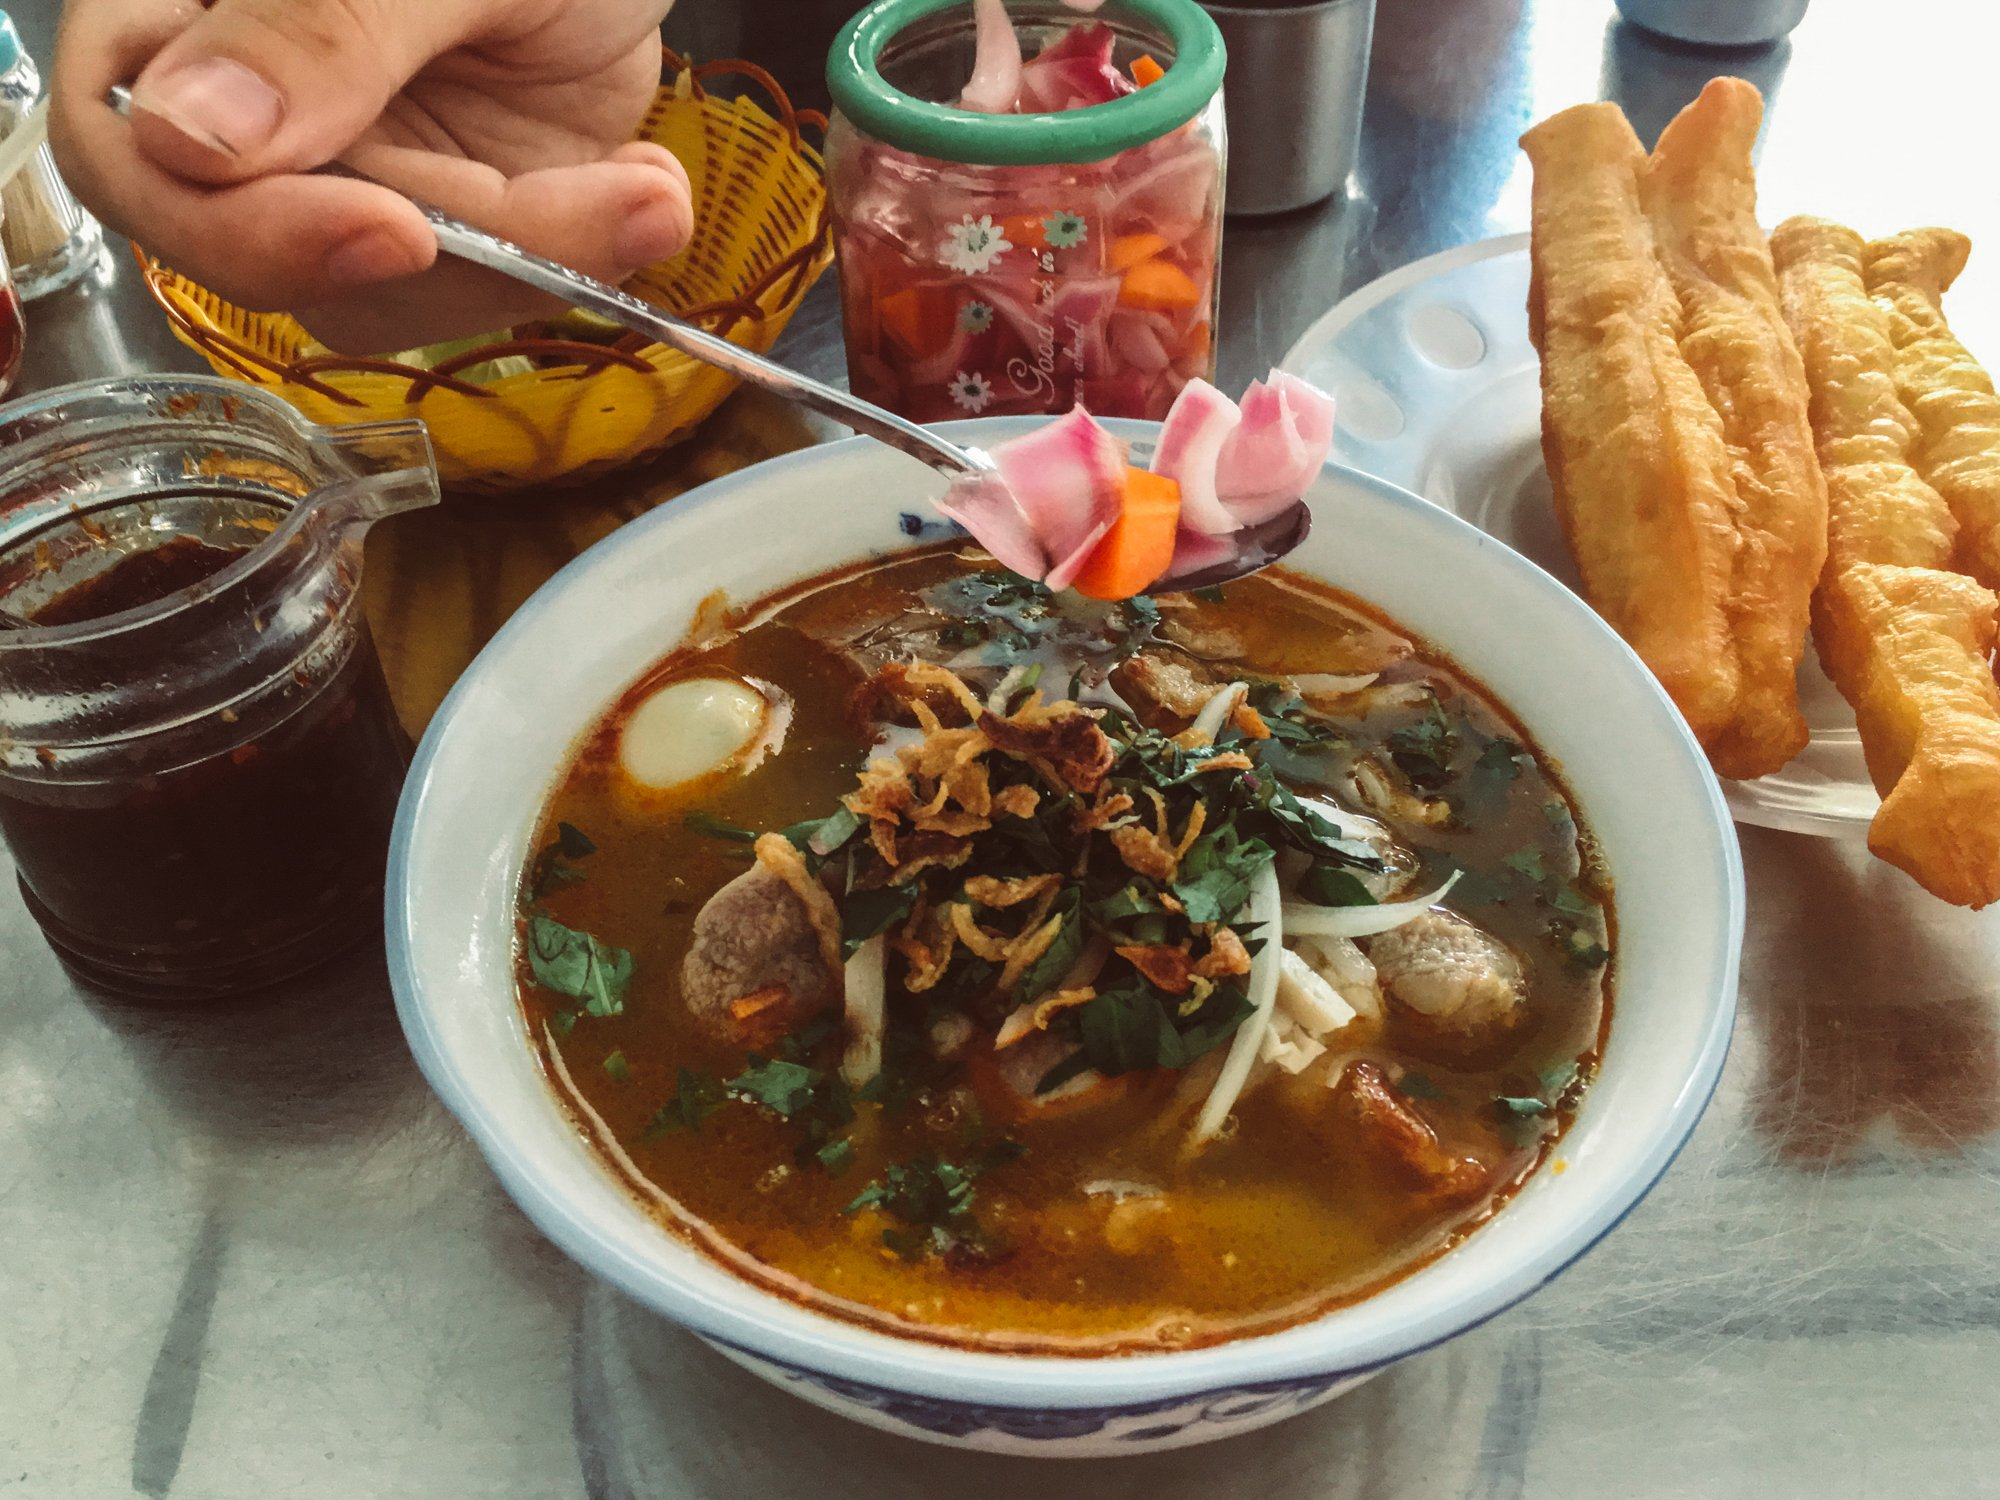 one of our favorite things to do in Da Nang is to taste the local noodle dishes